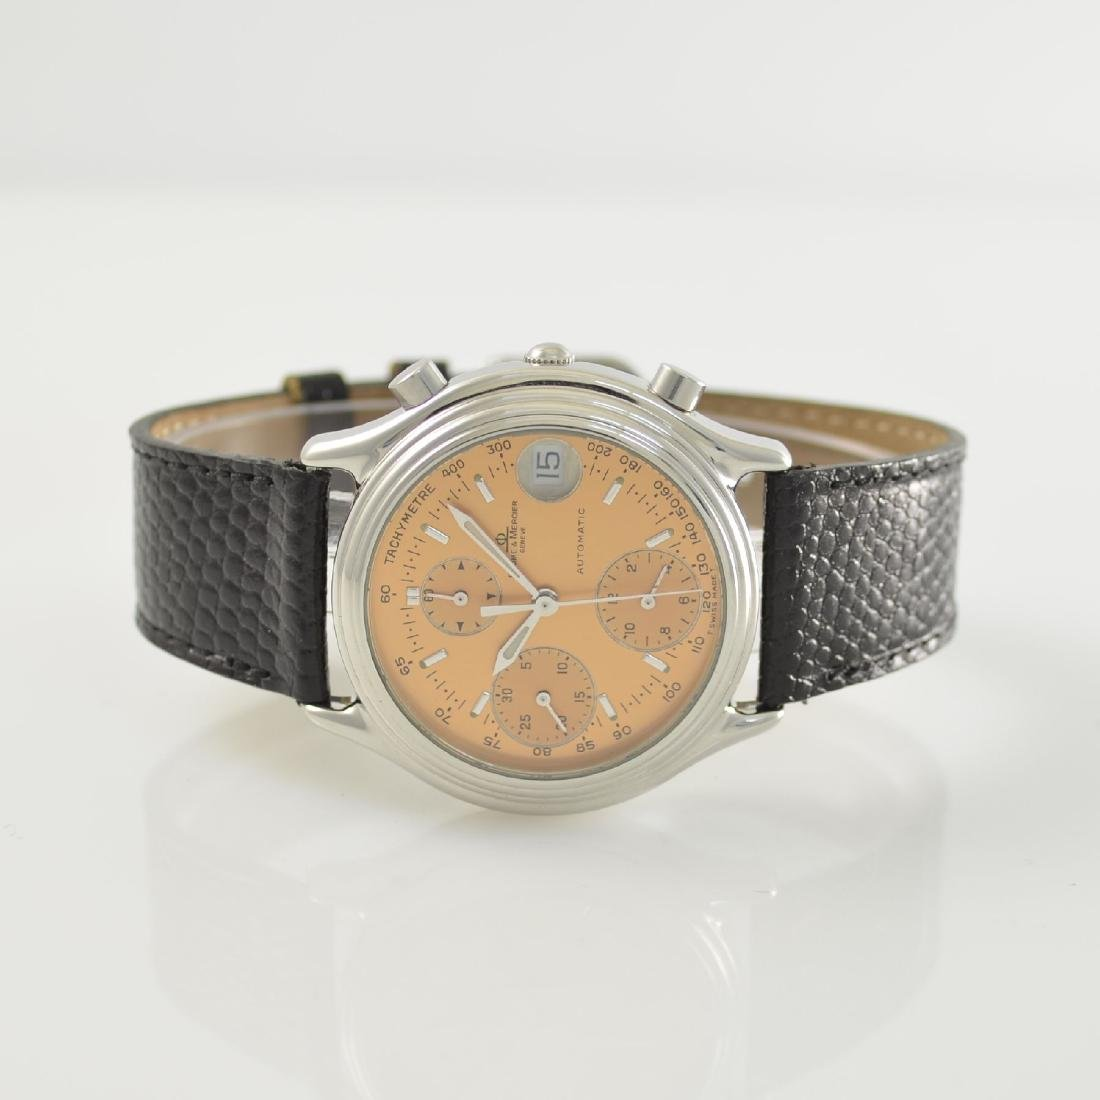 BAUME & MERCIER gents wristwatch with chronograph